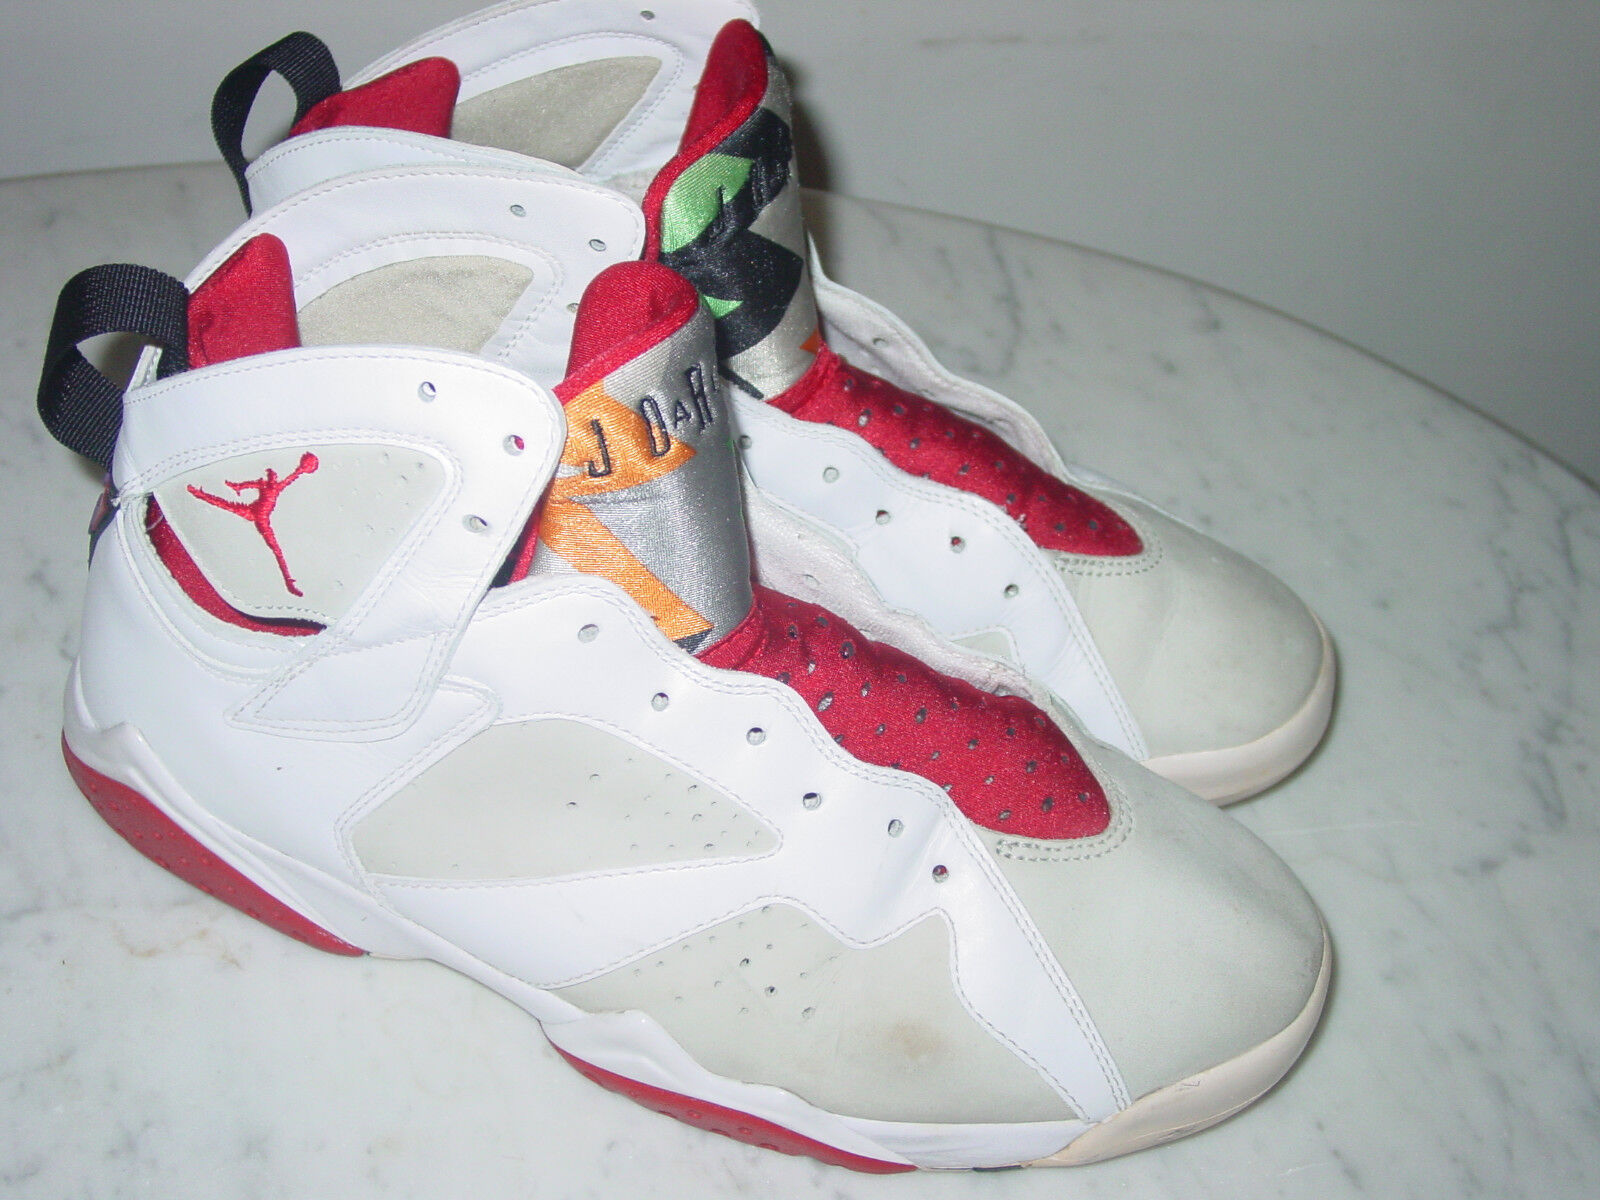 new style b35ff c9742 2007 Nike Air Jordan Retro 7 7 7 Countdown Pack White shoes Size 10.5 Sold  As